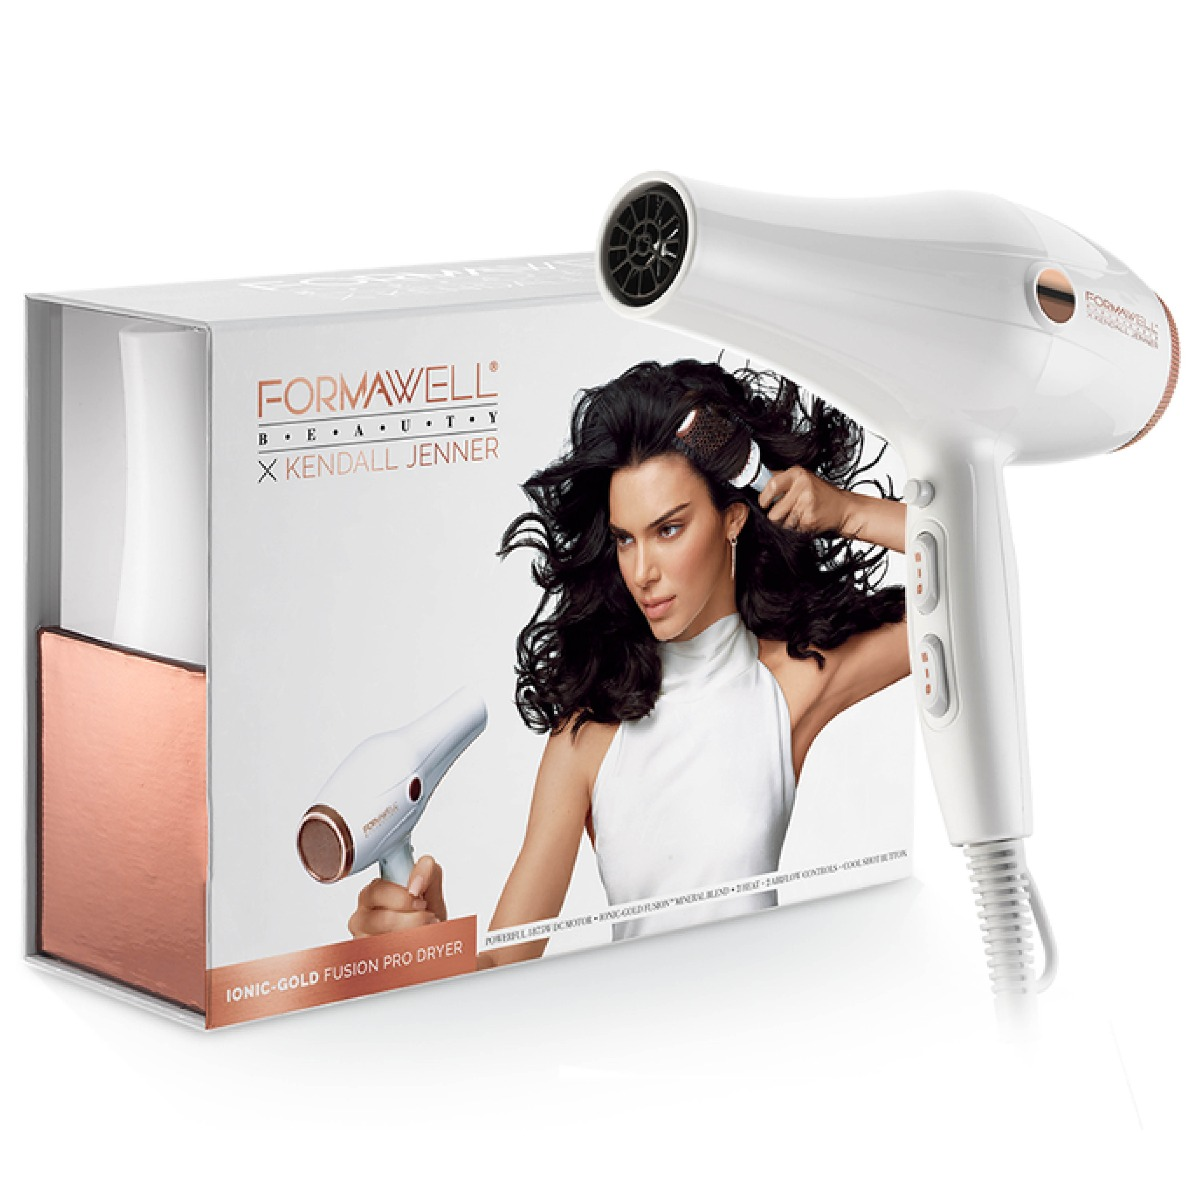 An image of Formawell Beauty X Kendall Jenner Ionic-Gold Fusion Pro Hair Dryer